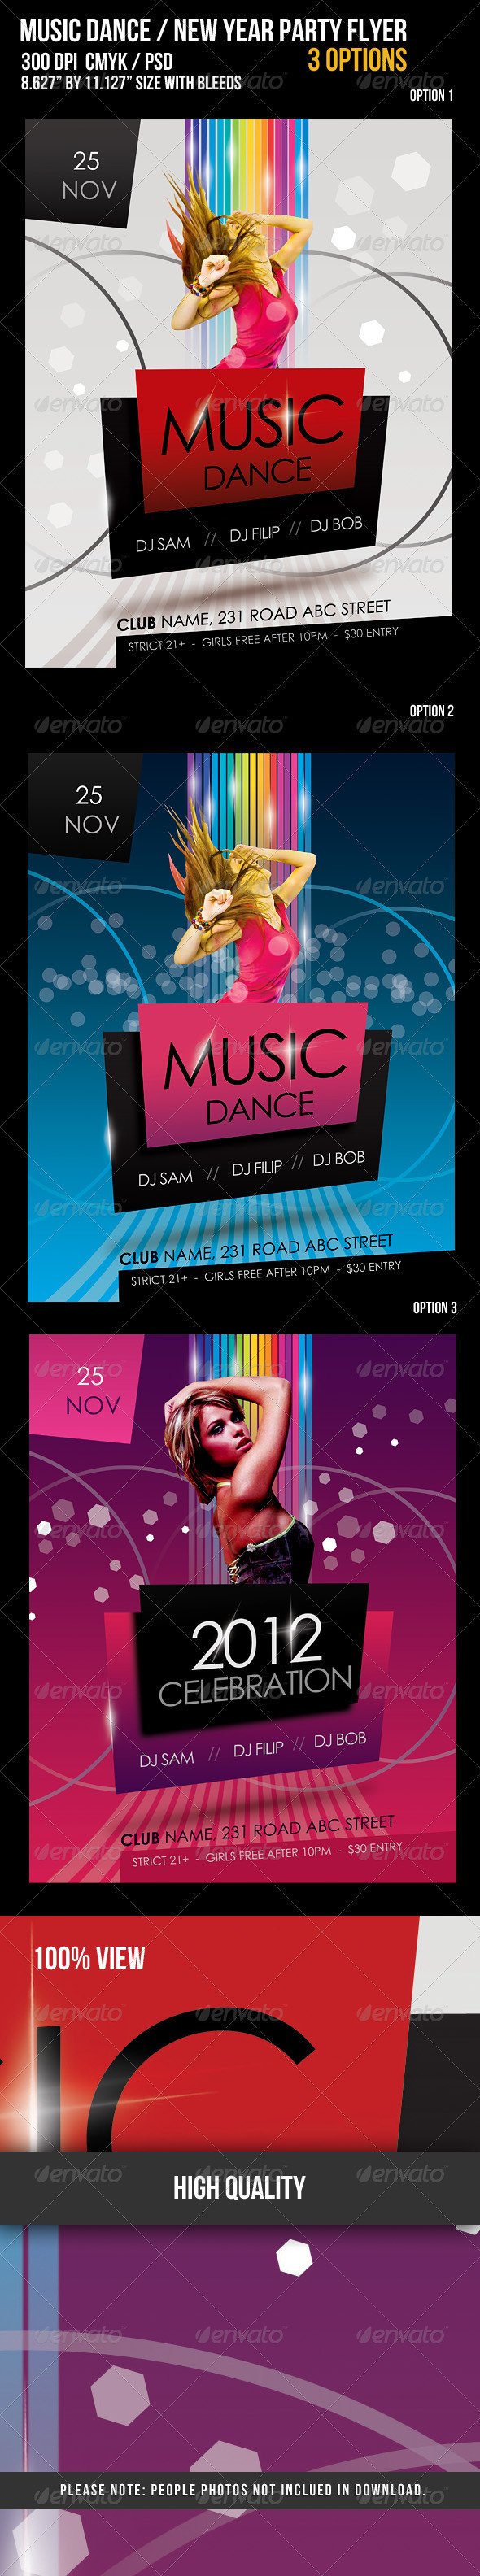 Music Dance / New Year Party Flyer - Clubs & Parties Events